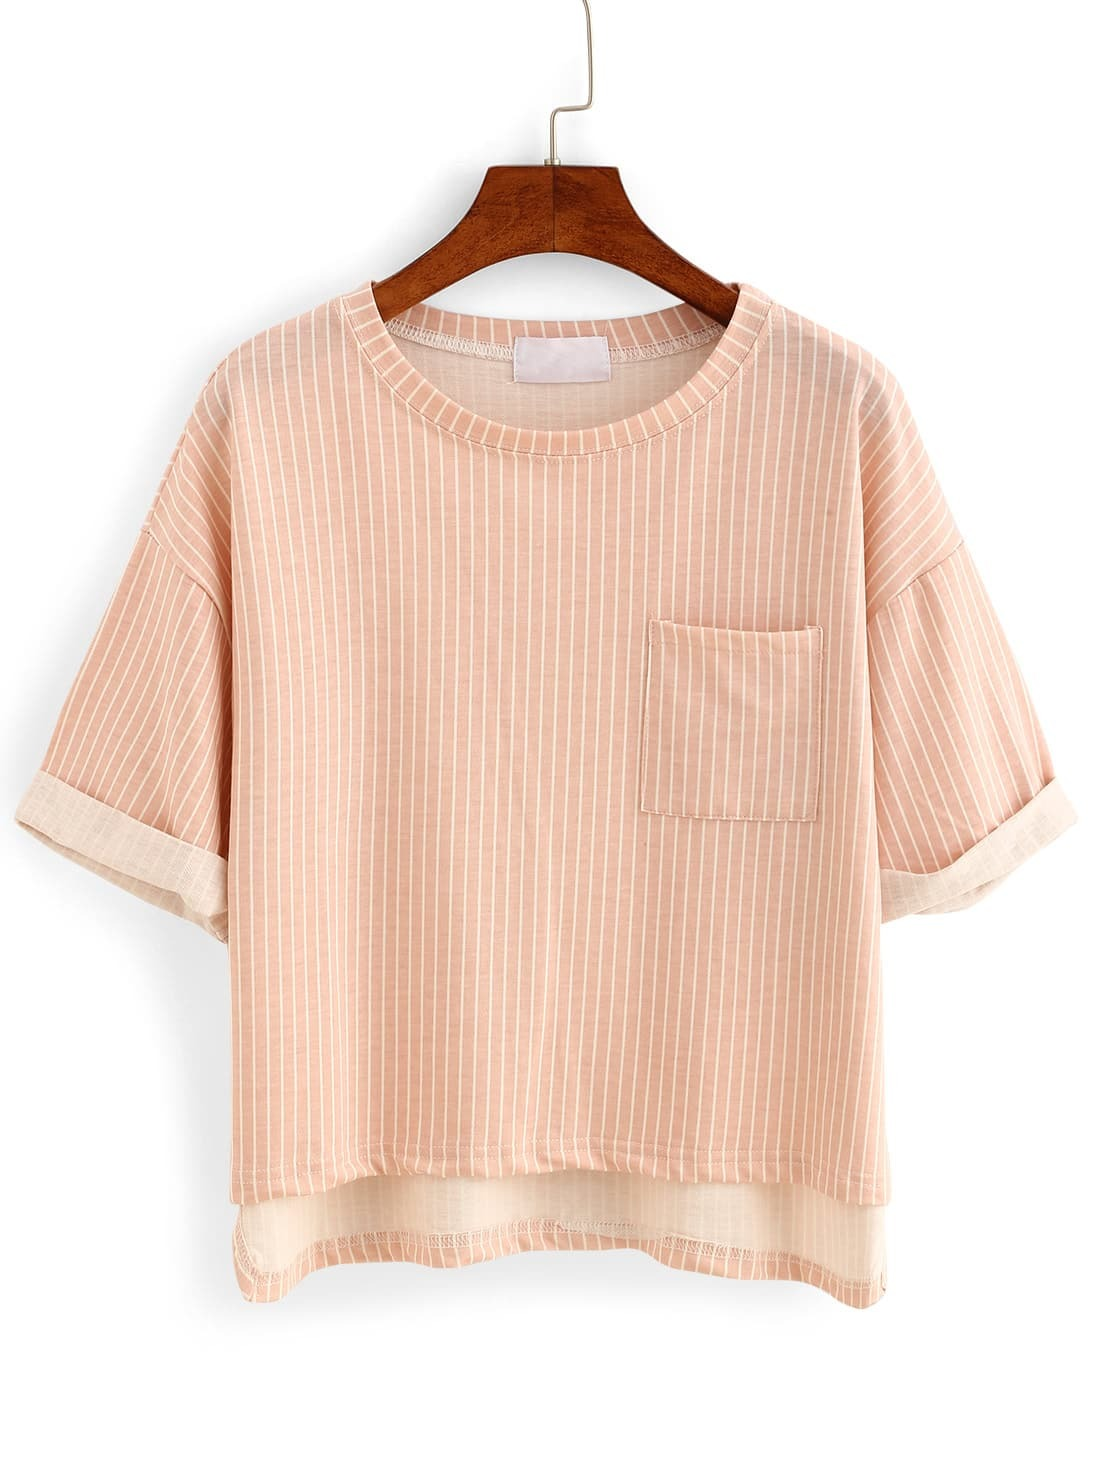 Vertical Striped High-Low Pocket T-shirt - PinkVertical Striped High-Low Pocket T-shirt - Pink<br><br>color: Pink<br>size: one-size